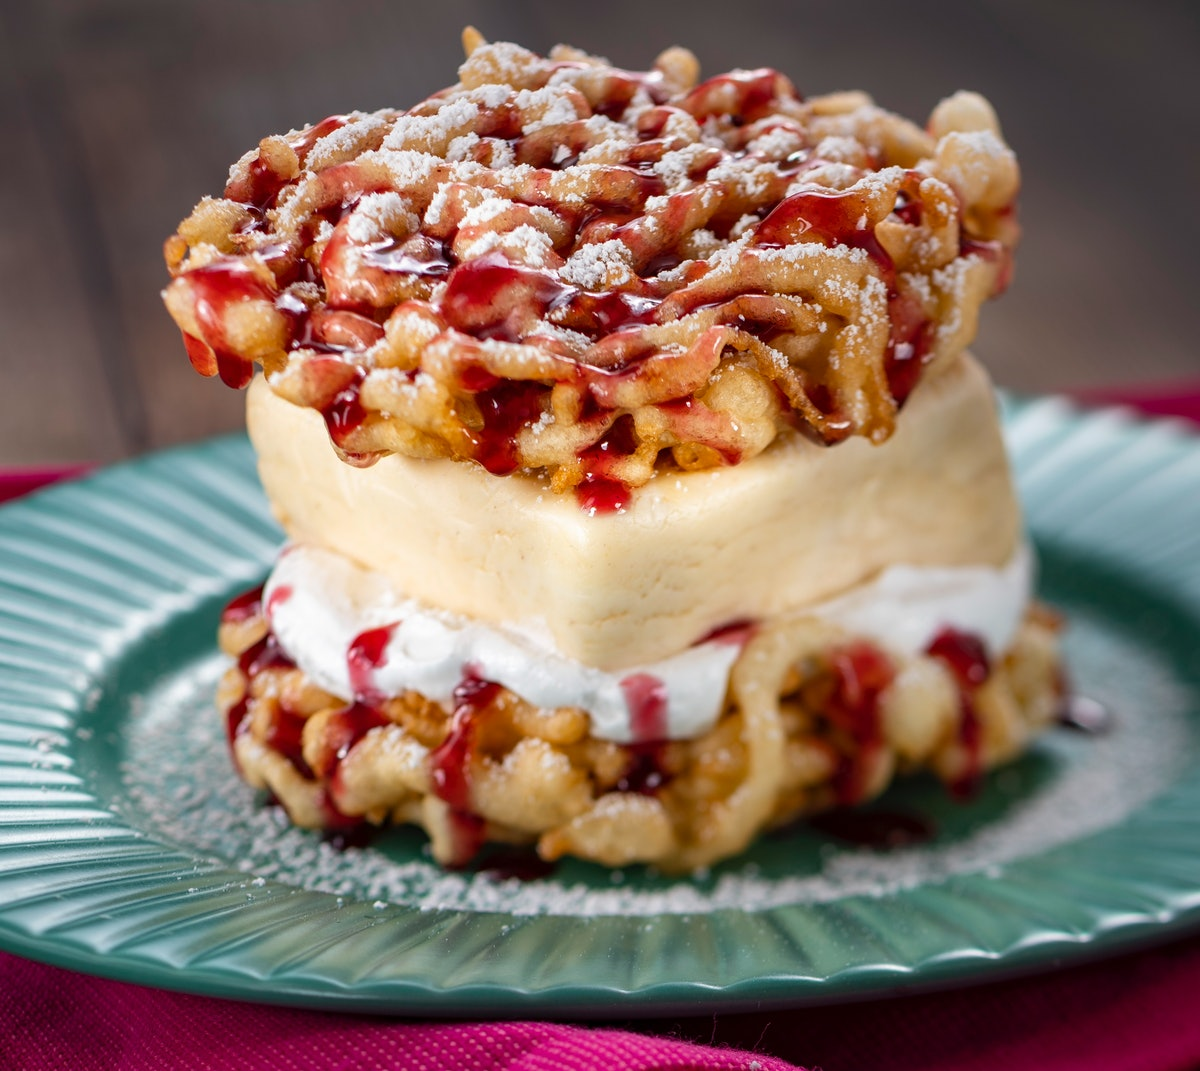 The Peanut Butter and Jelly Funnel Cake served at Epcot's International Festival of the Arts sits on...